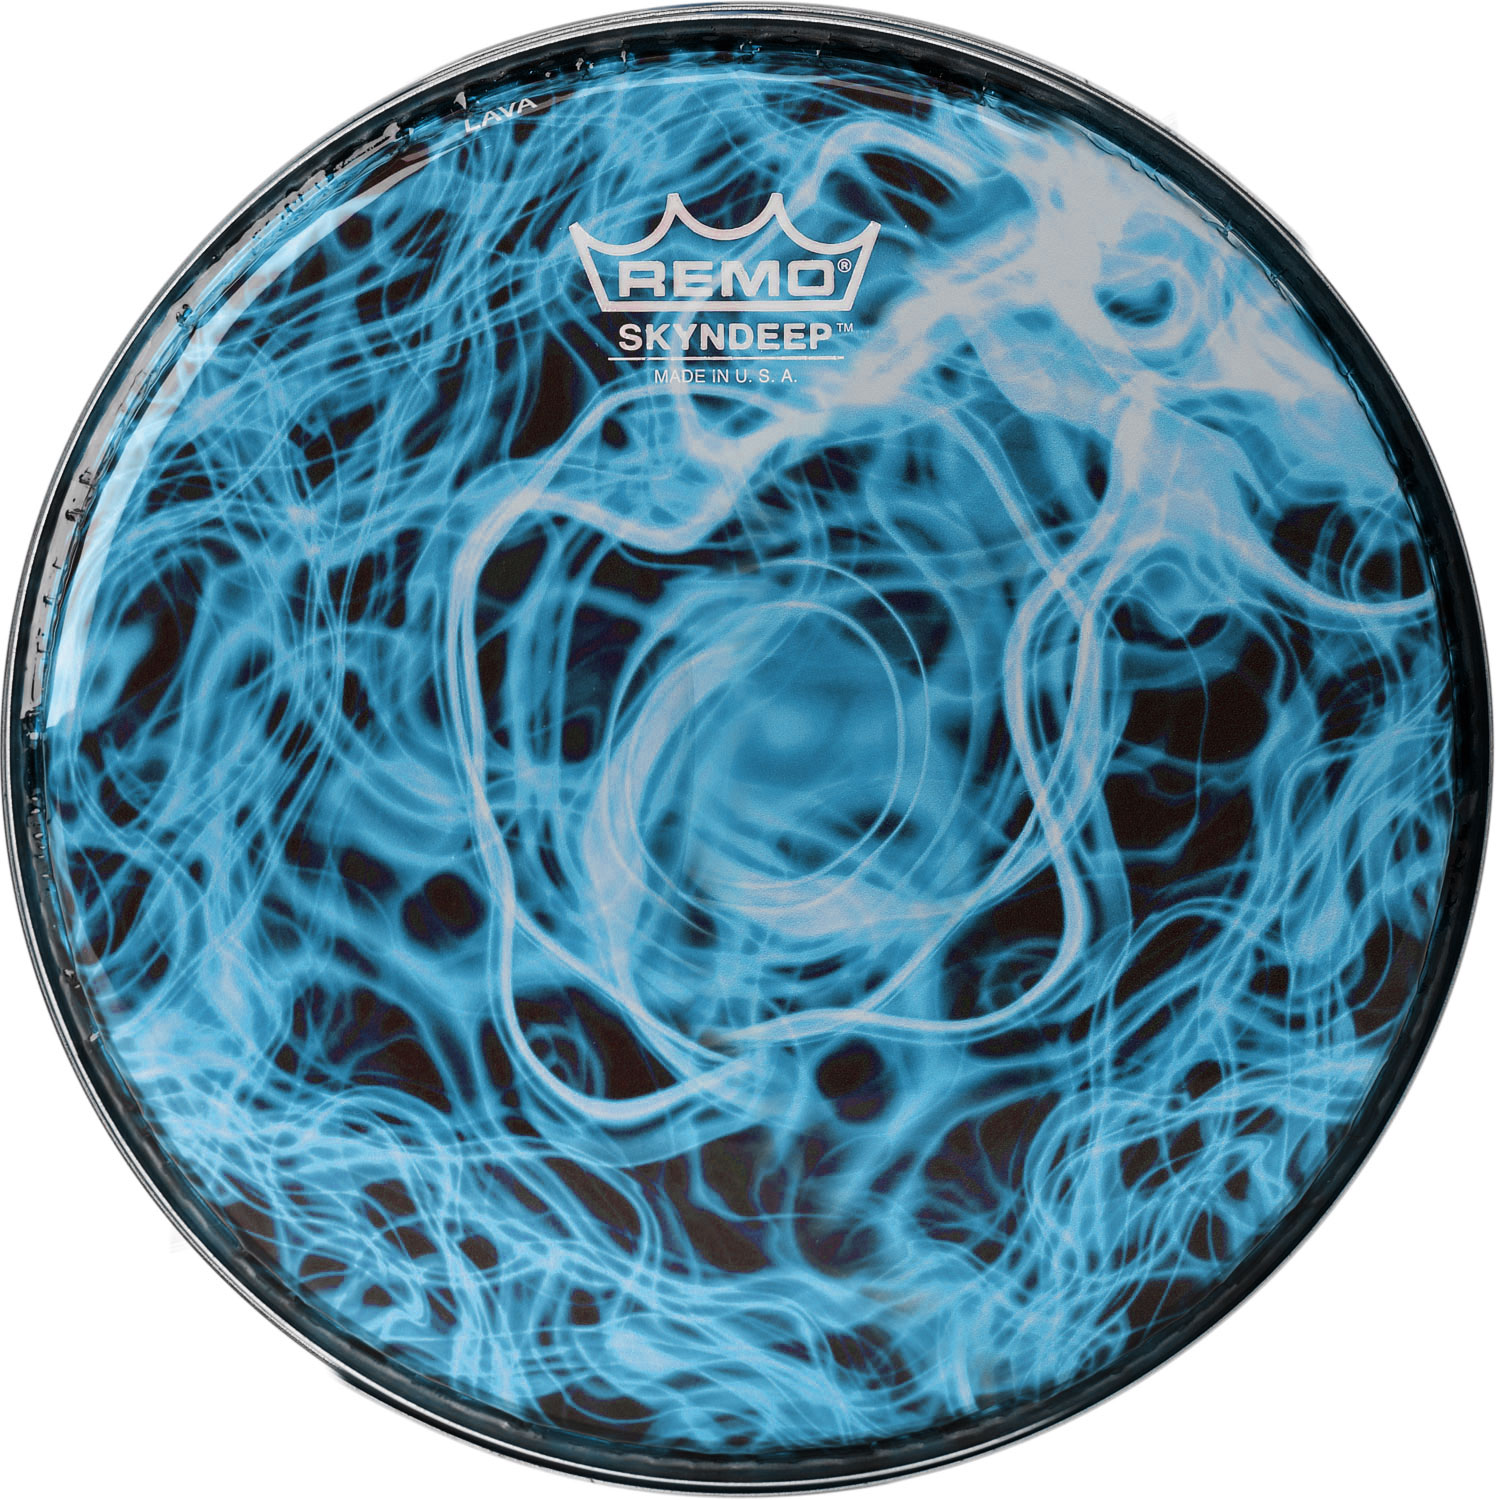 "Remo 10"" Skyndeep R-Series Doumbek Head with Turquoise Wave Graphic"